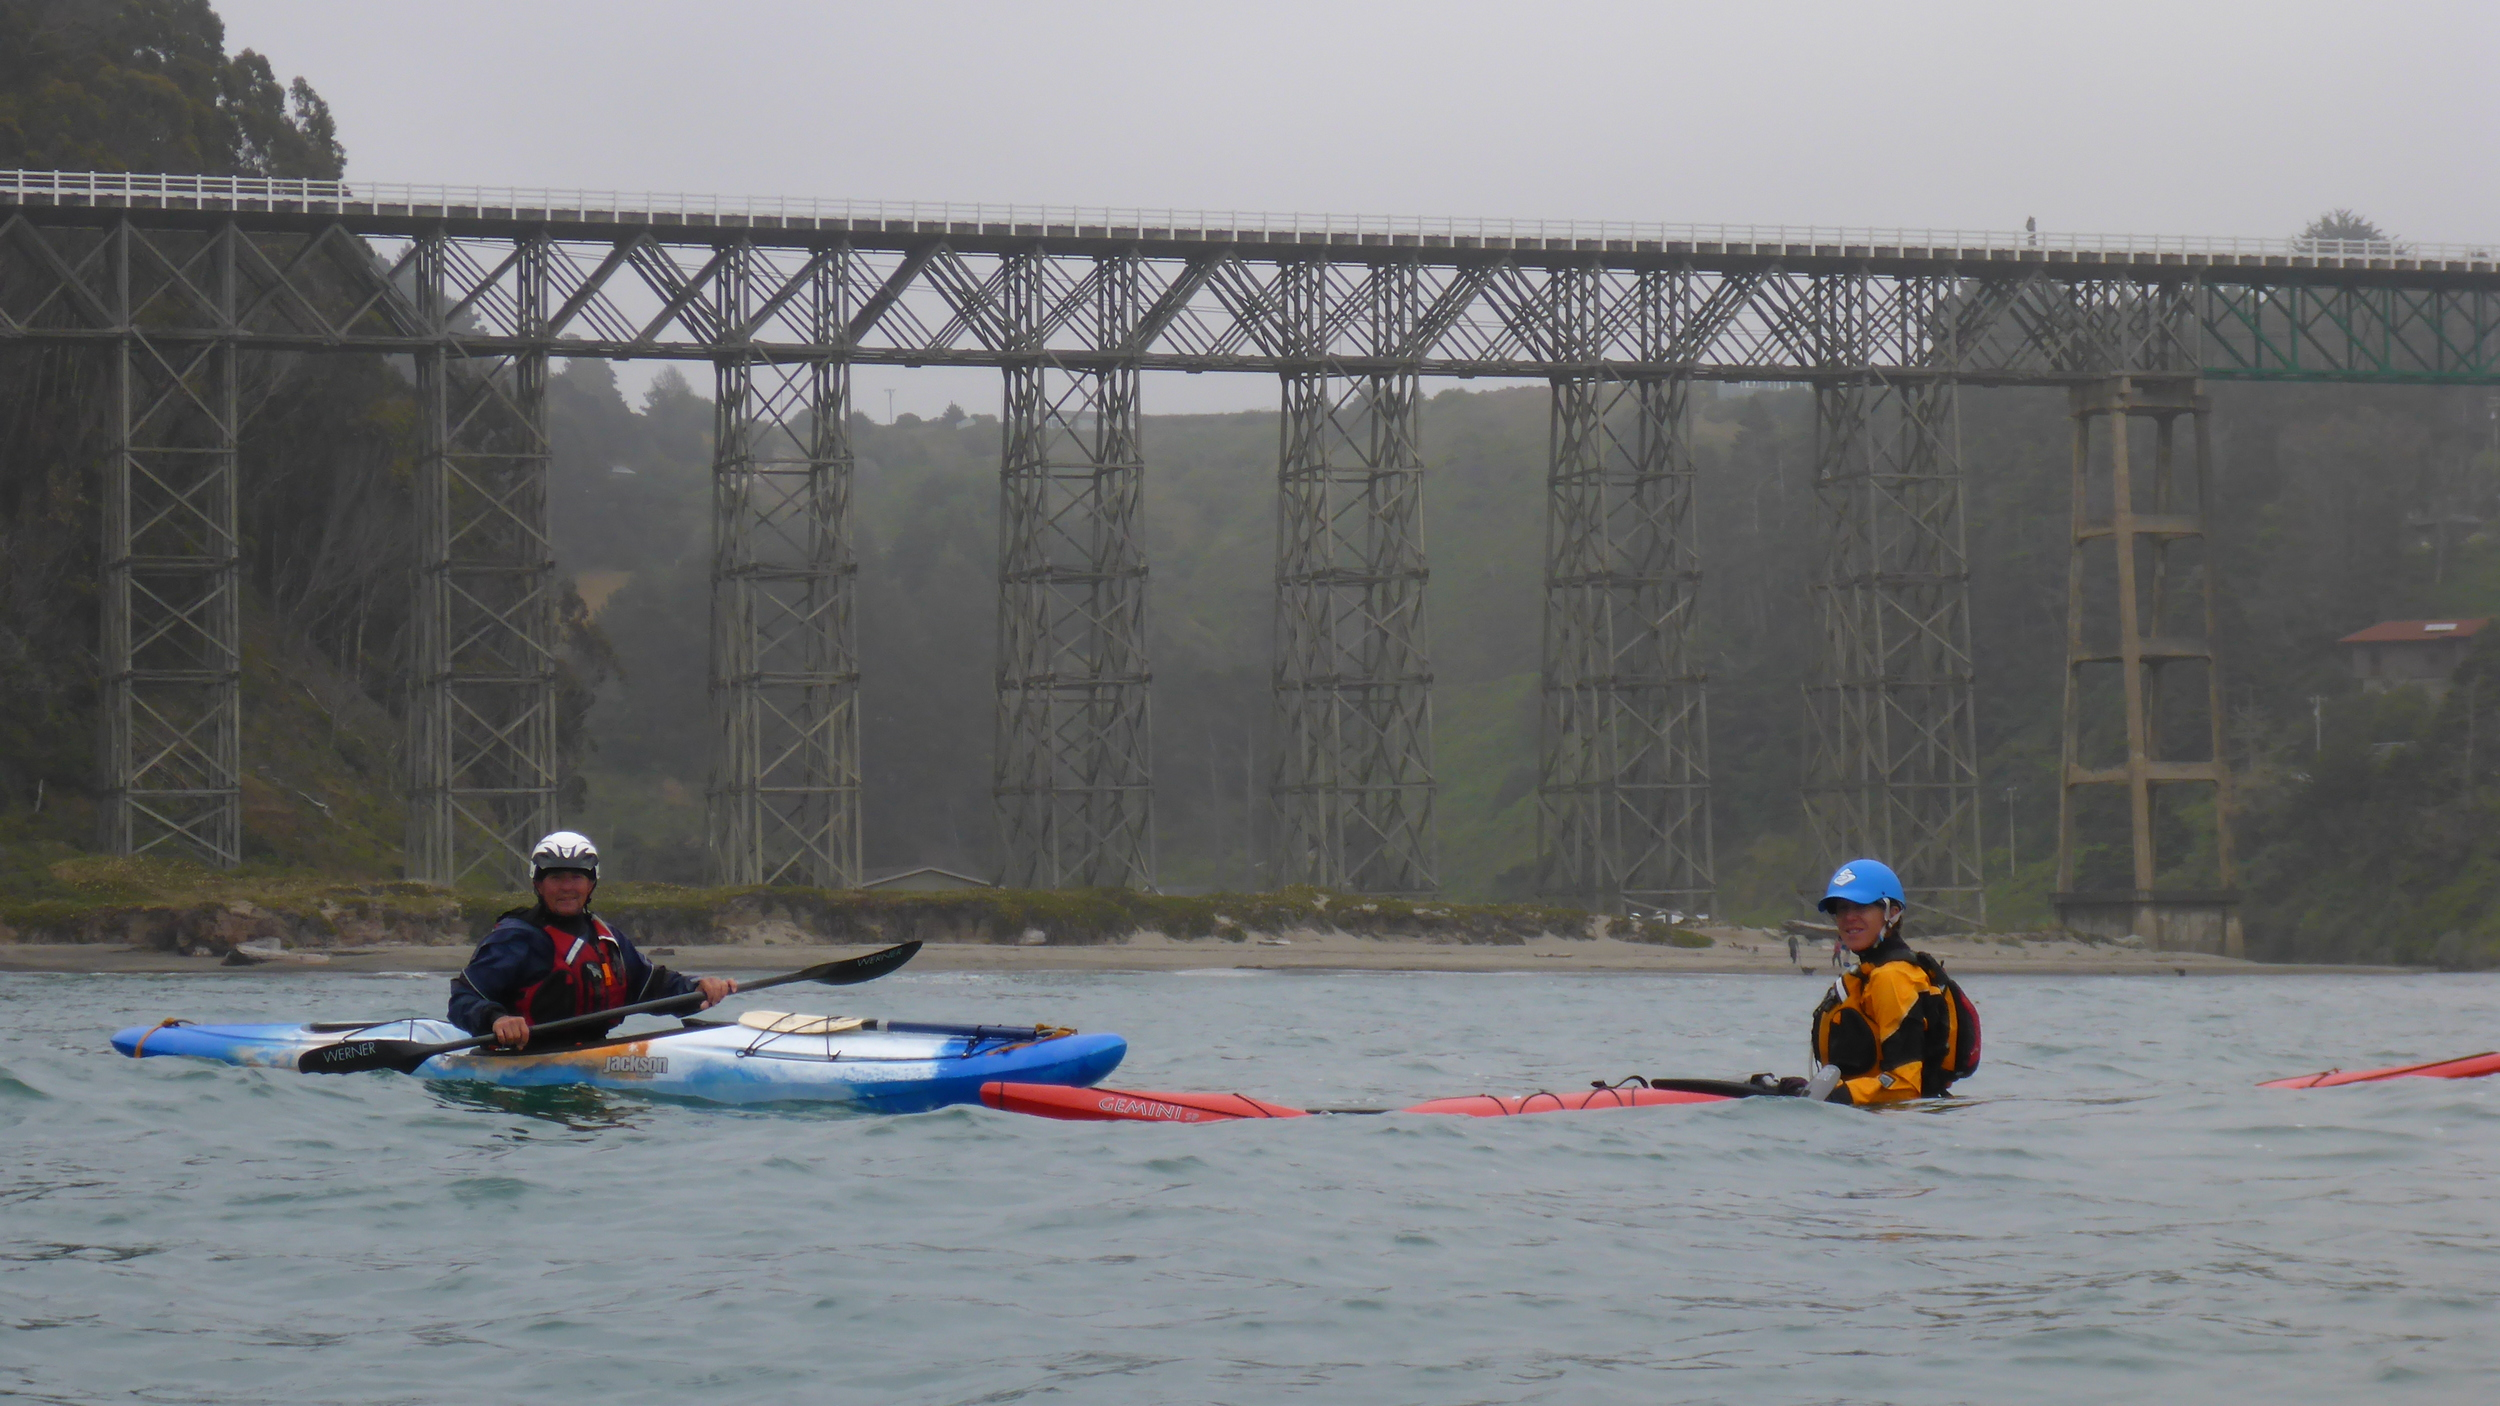 Sea kayak classes and tours in the Albion area of the Mendocino Coast